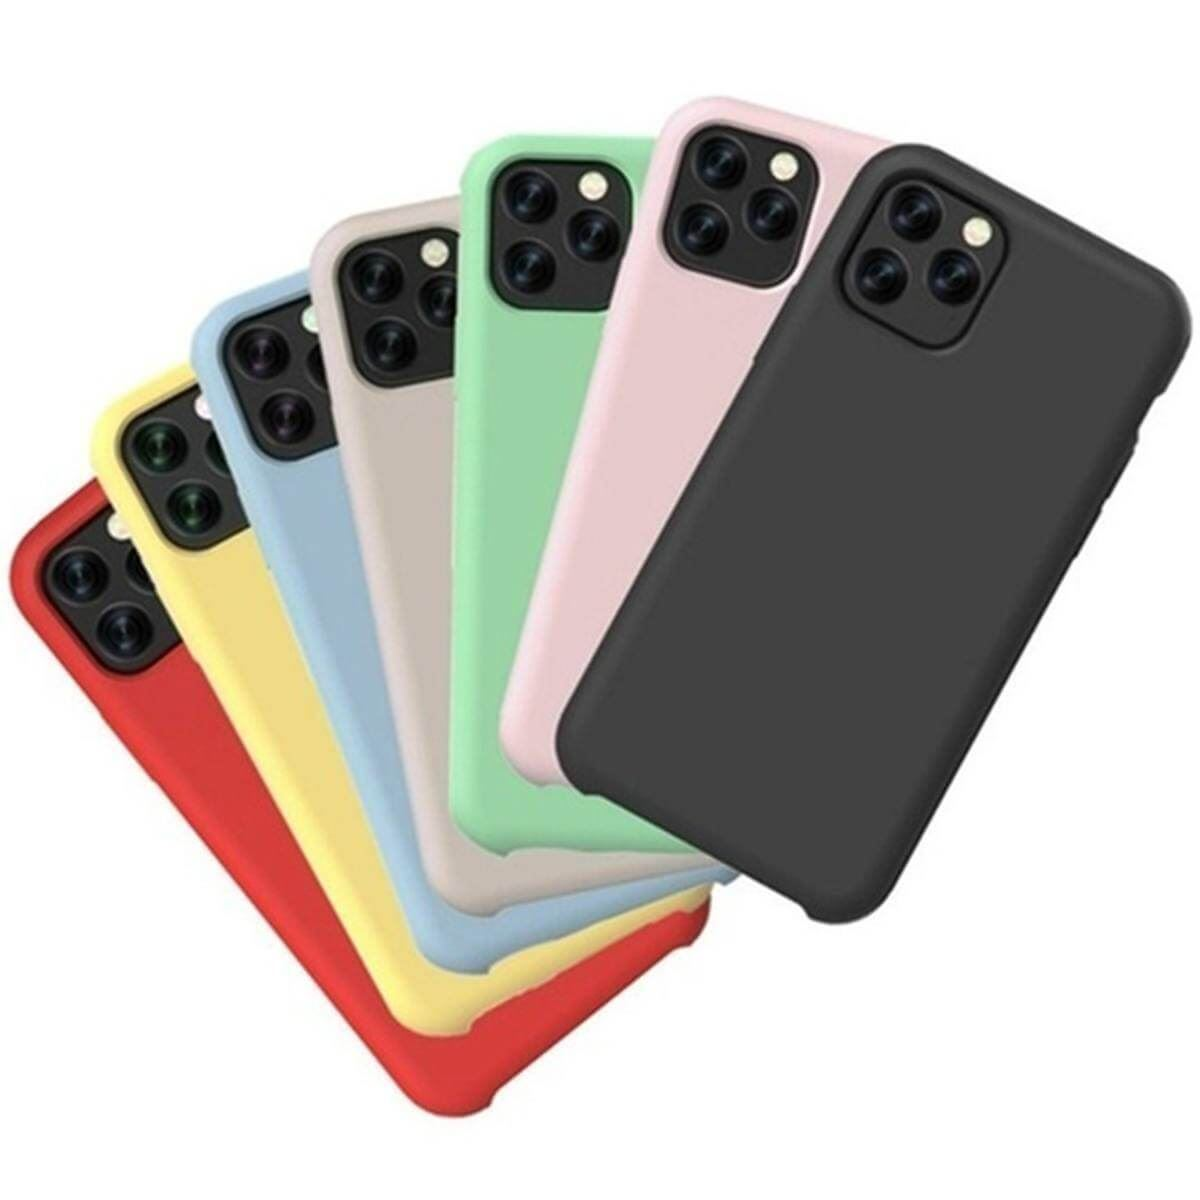 Liquid-Silicone-Shockproof-Case-For-Apple-iPhone-Soft-Matte-Back-Phone-Cover thumbnail 36